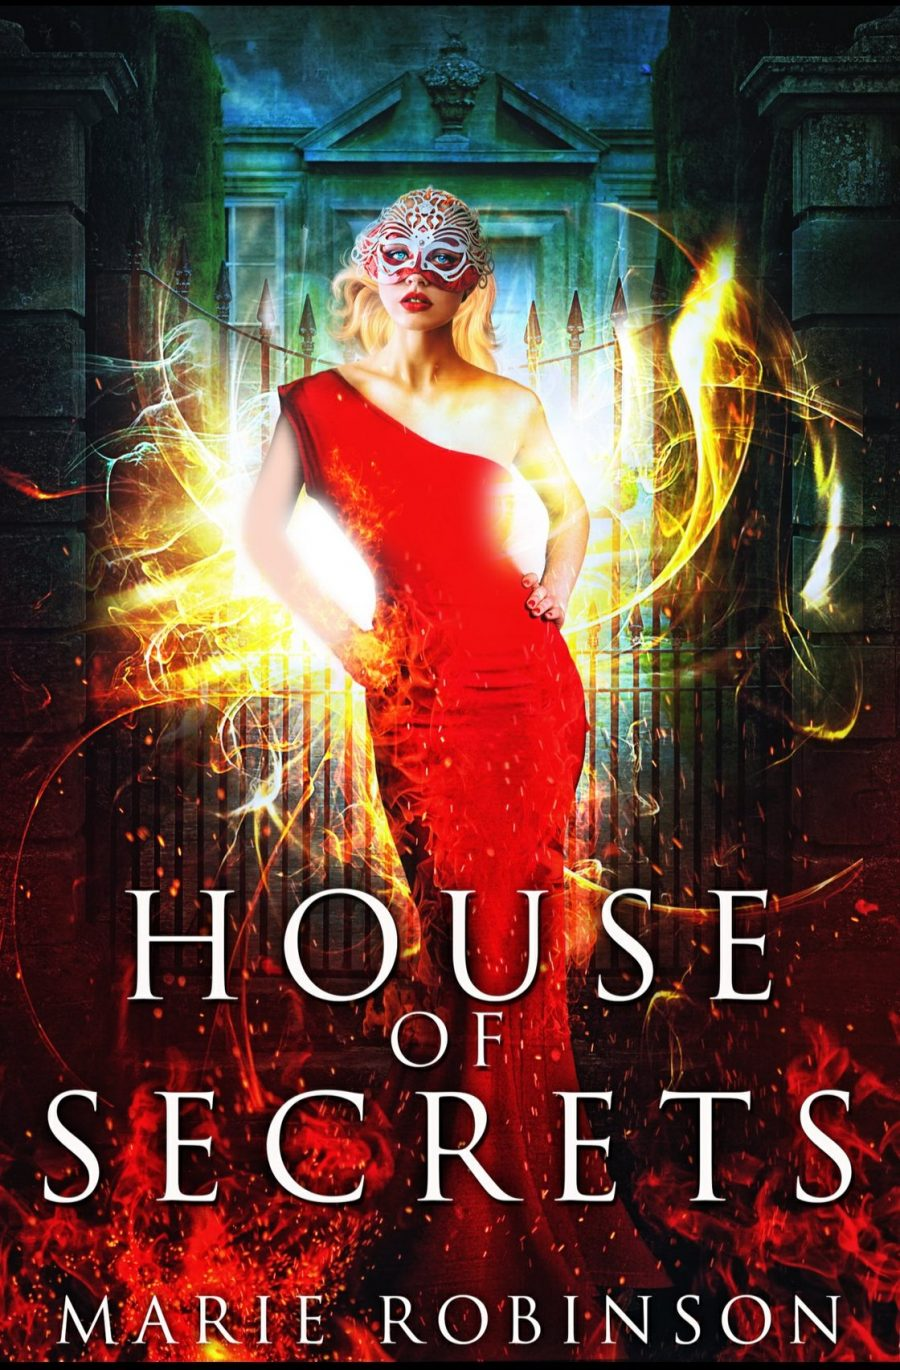 House of Secrets by Marie Robinson – A Book Review